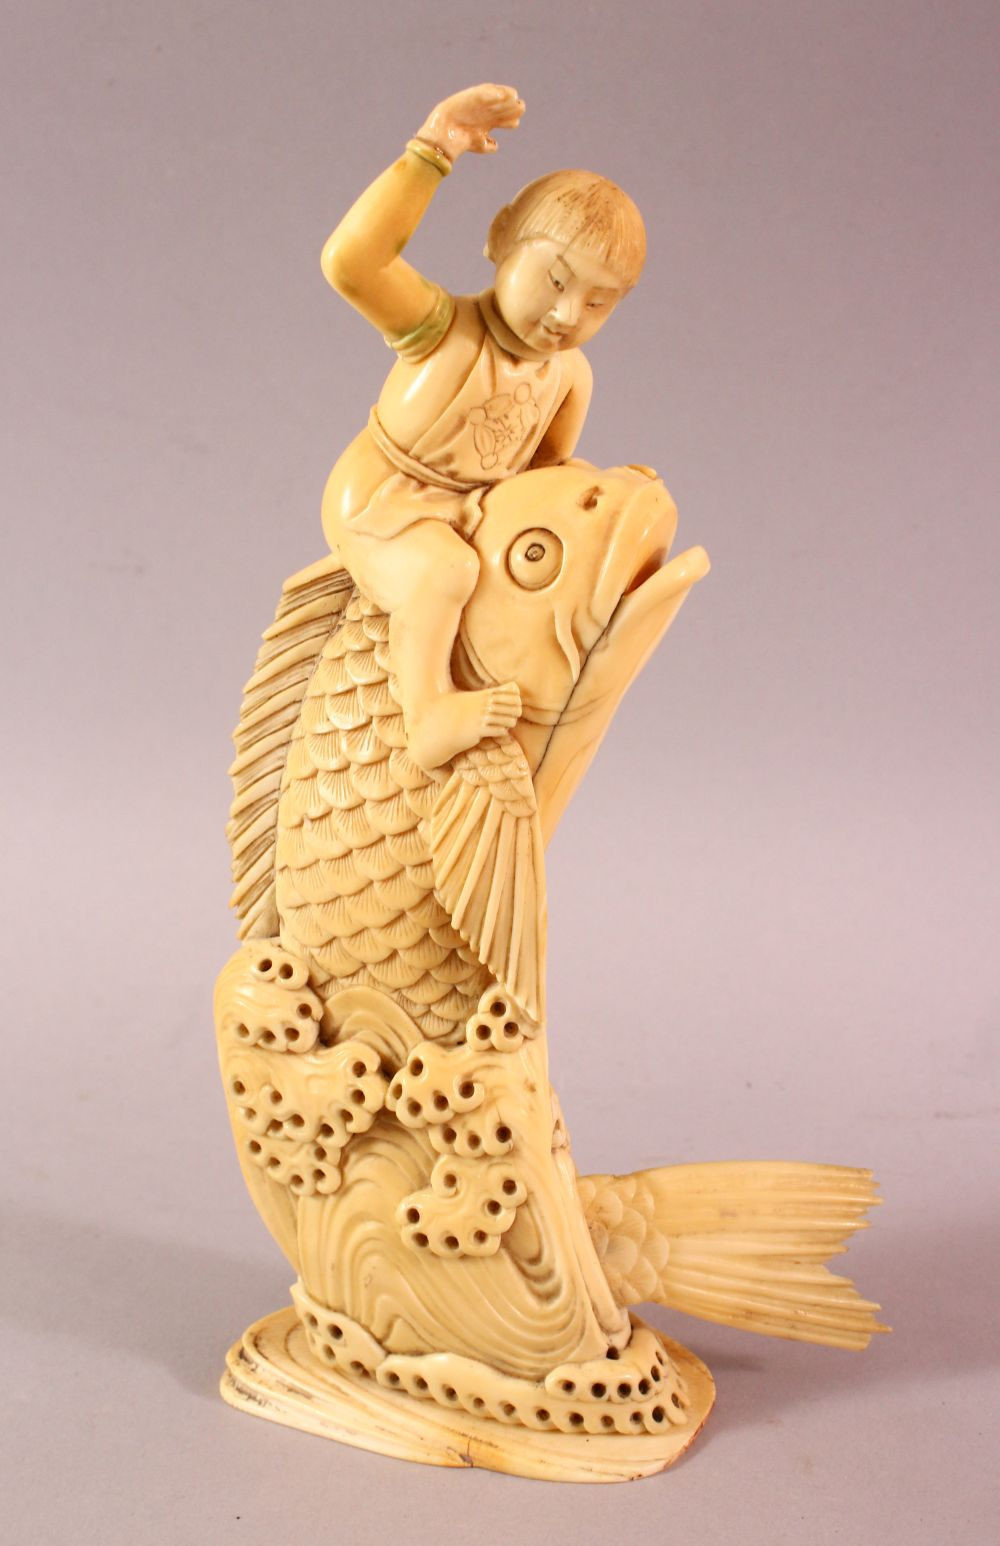 A JAPANESE MEIJI PERIOD CARVED IVORY FISH OKIMONO, the fish emerging from the water with a boy on